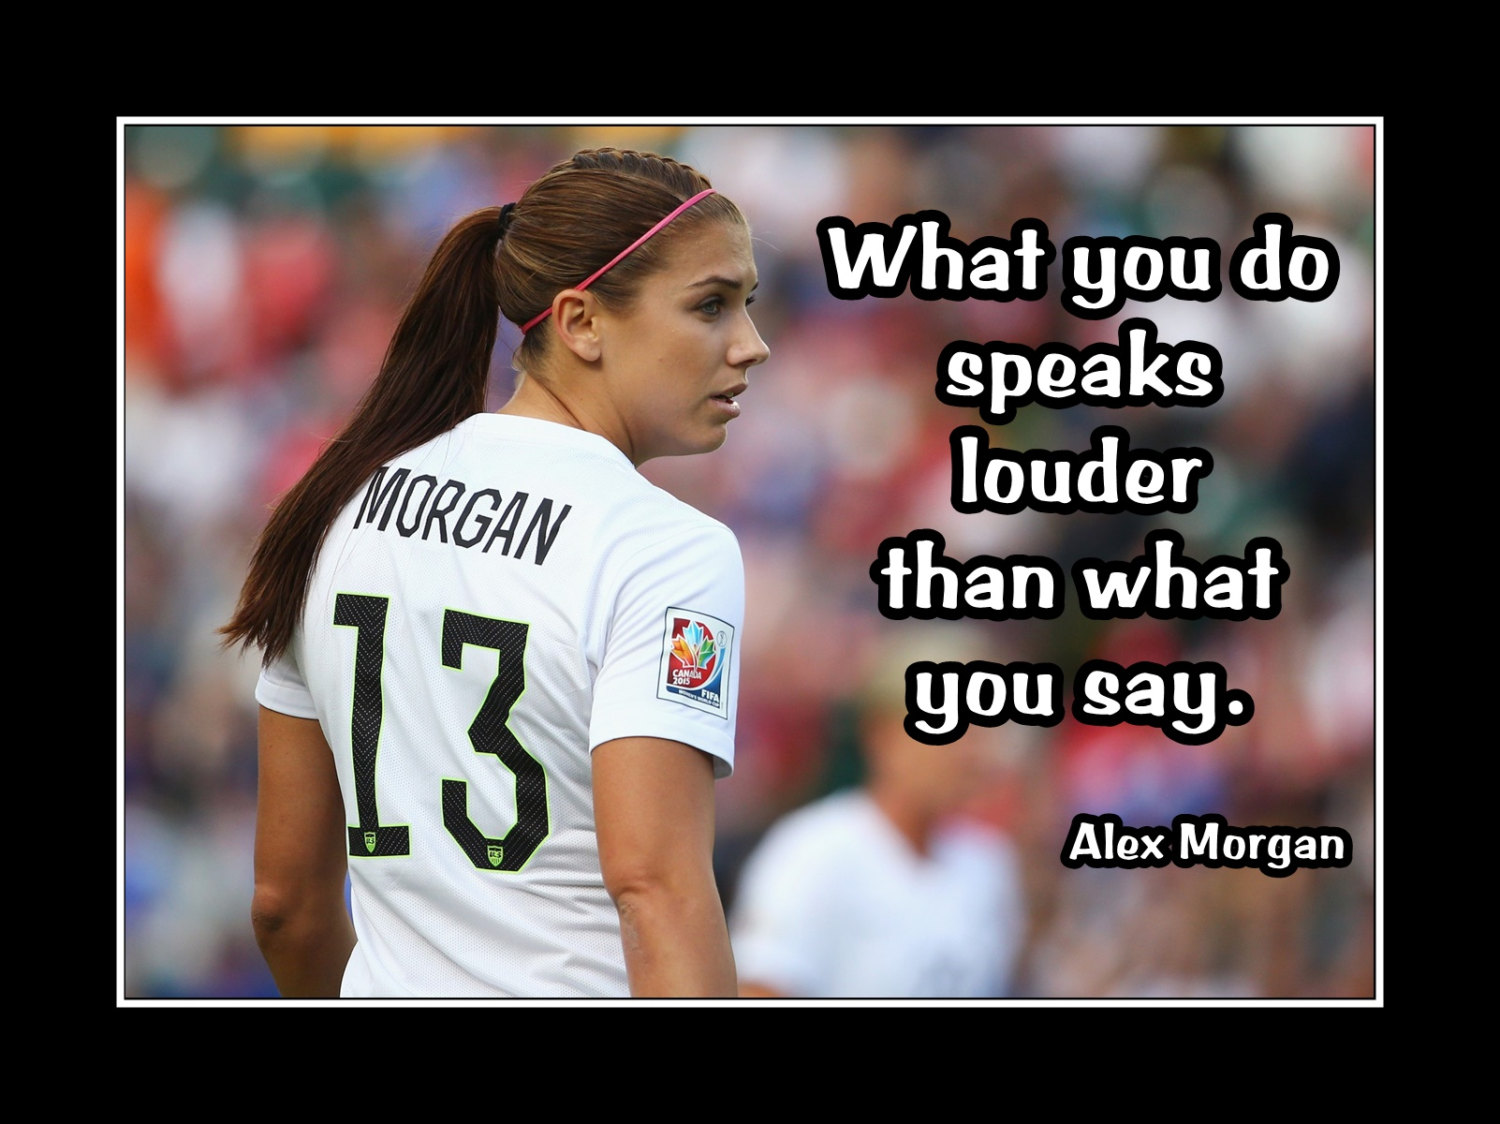 half off 2ba84 b503e Alex Morgan Girls Soccer Motivation Poster, Daughter Wall Decor, Coaching  Wall Art Gift, What You Do Speaks Louder, 8x10